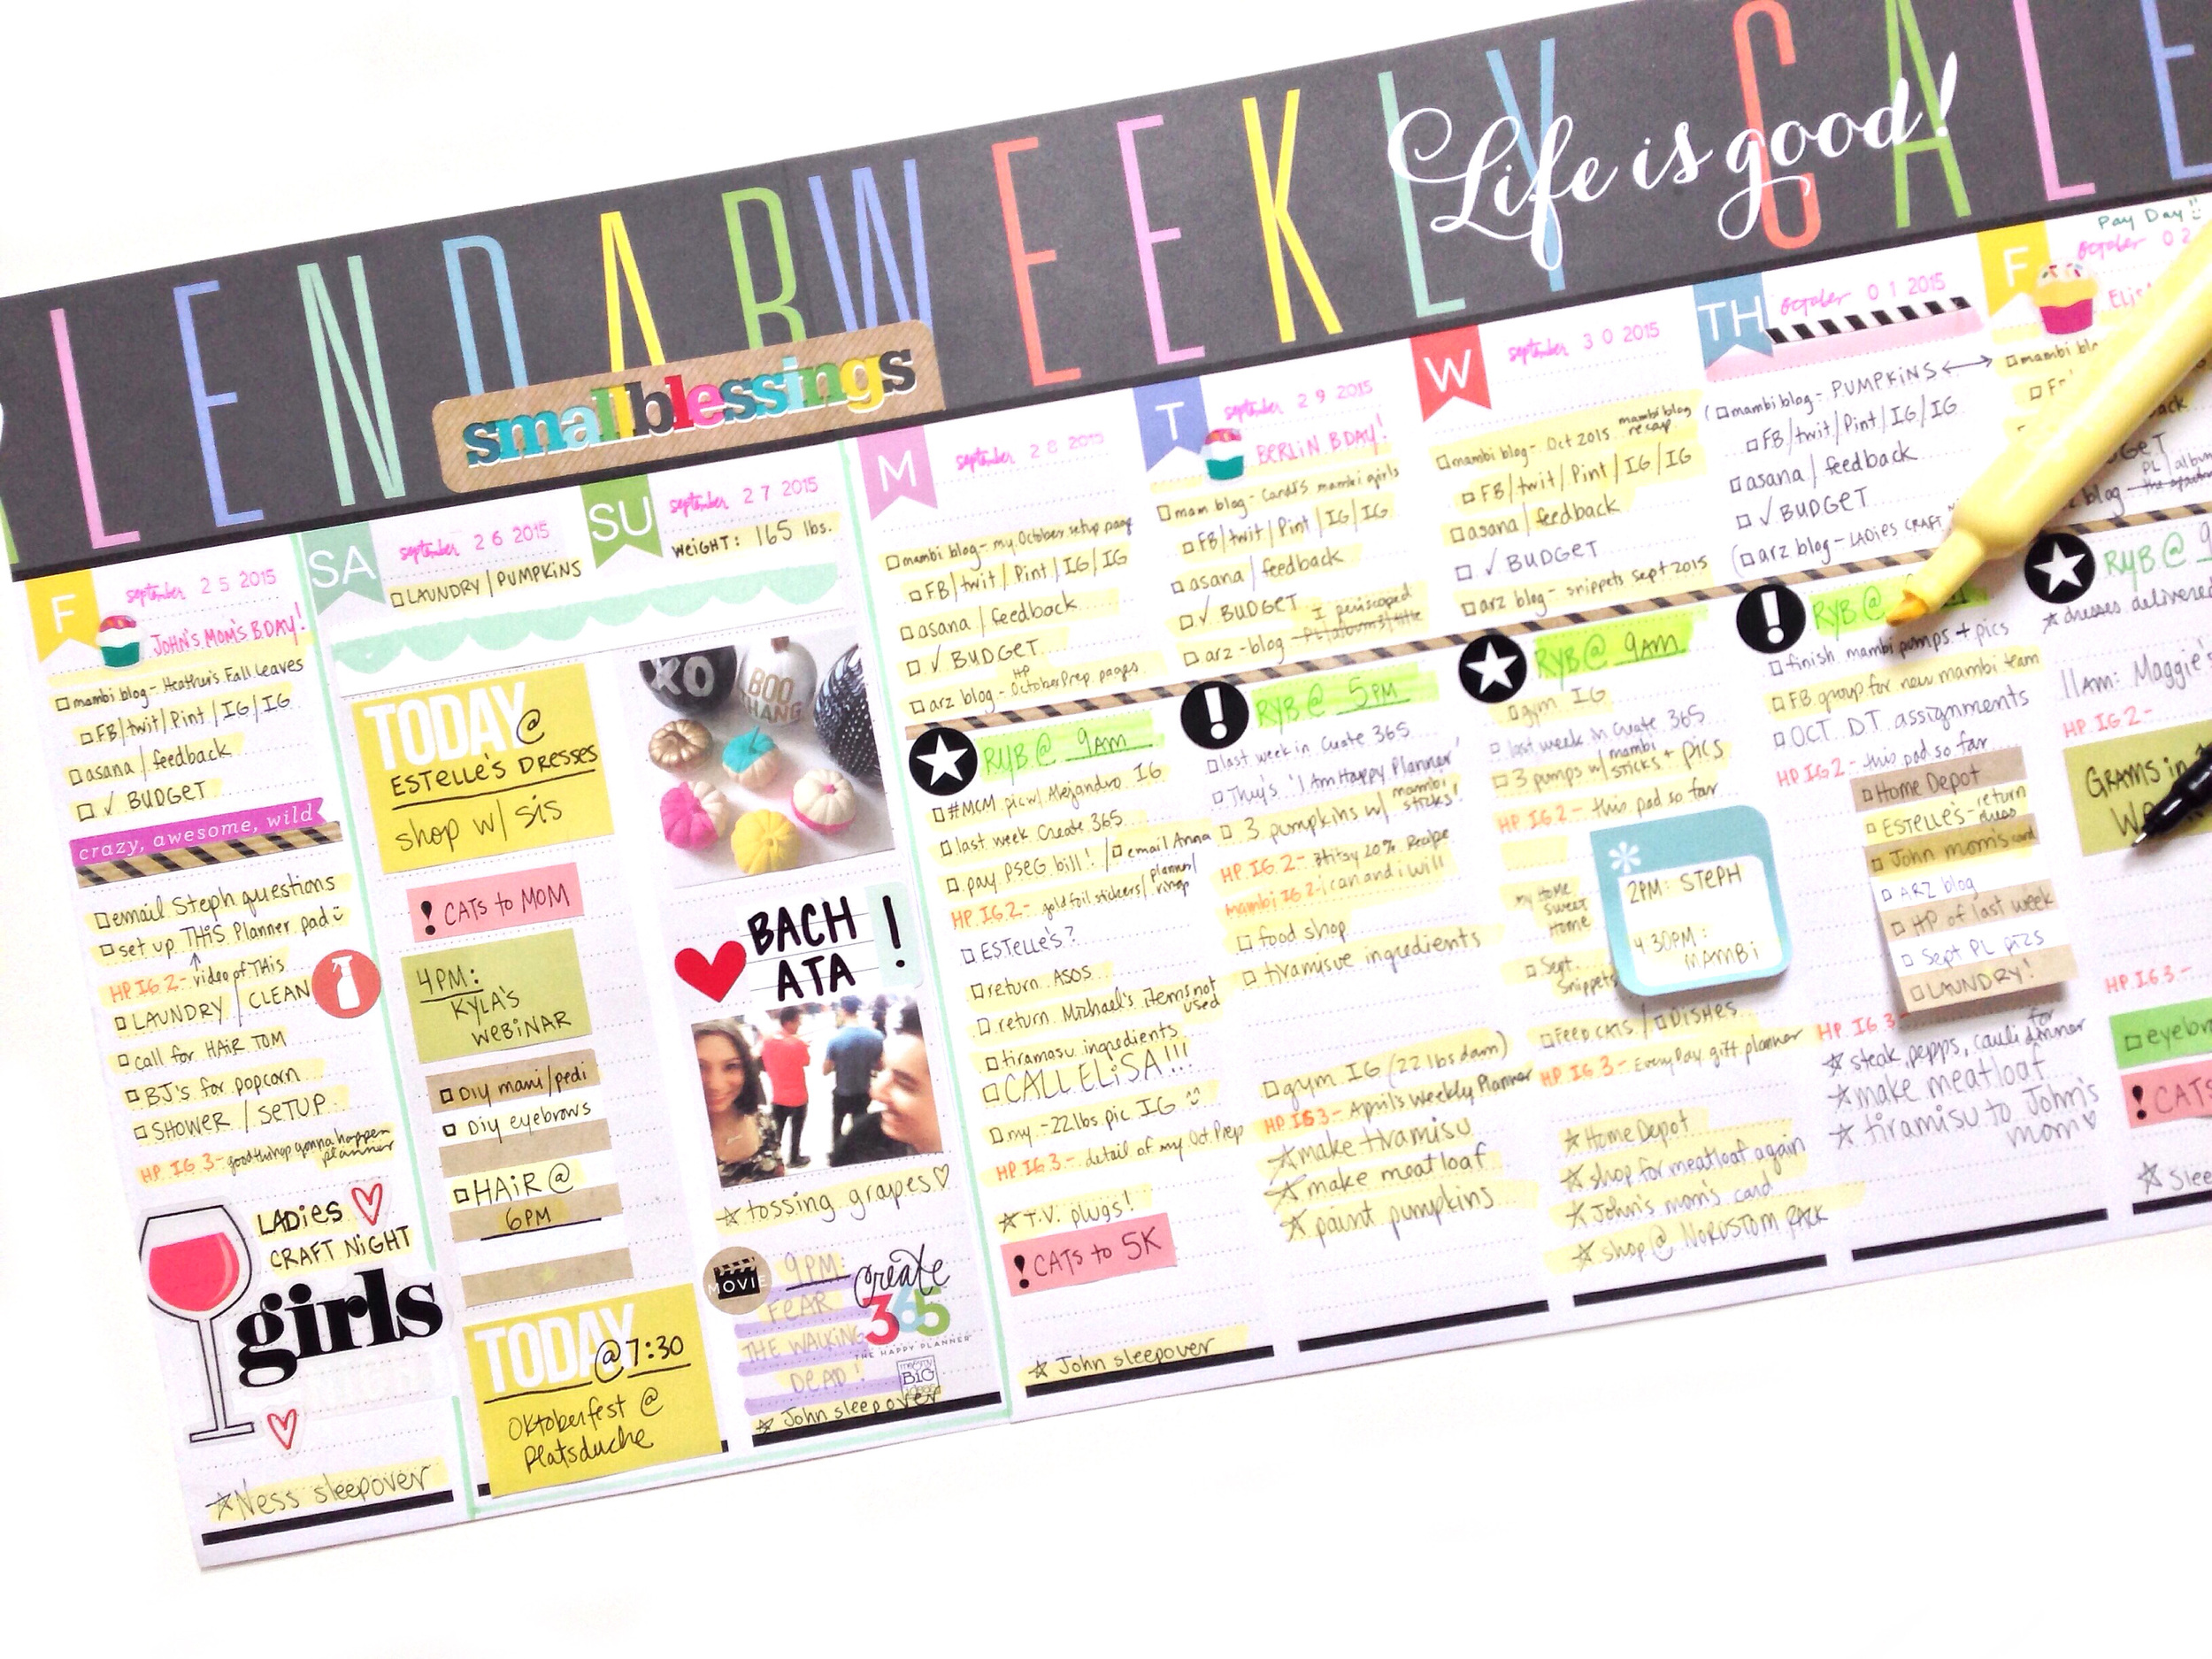 looong Weekly Planner Pad created by mambi Social Media Coordinator Amanda Zampelli by taping two planner pad sheets together | me & my BIG ideas